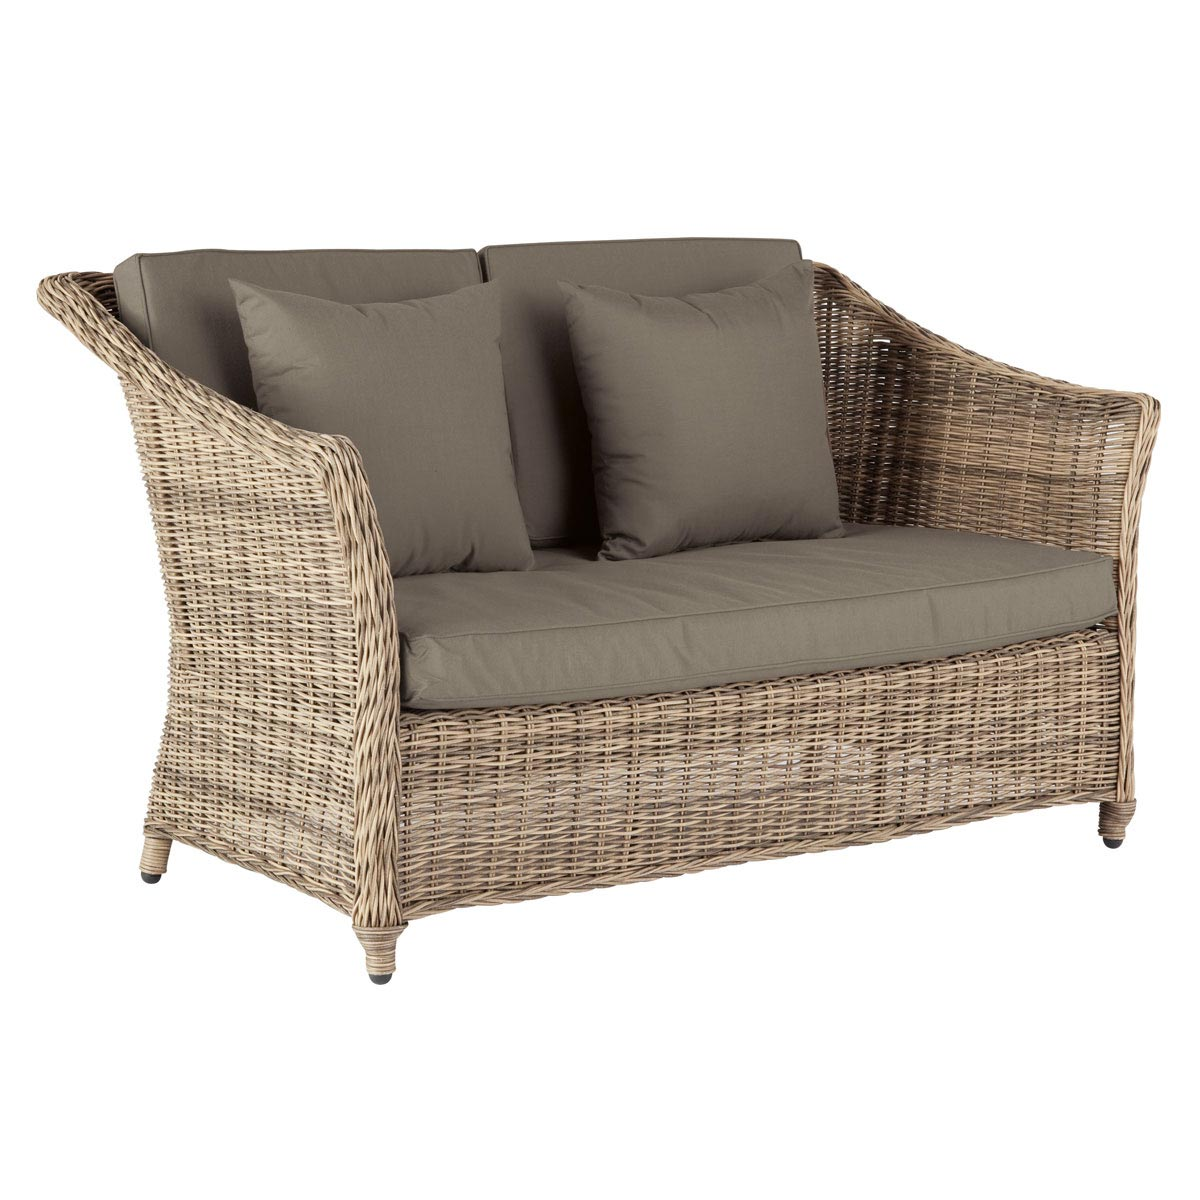 Inexpensive Outdoor Loveseat